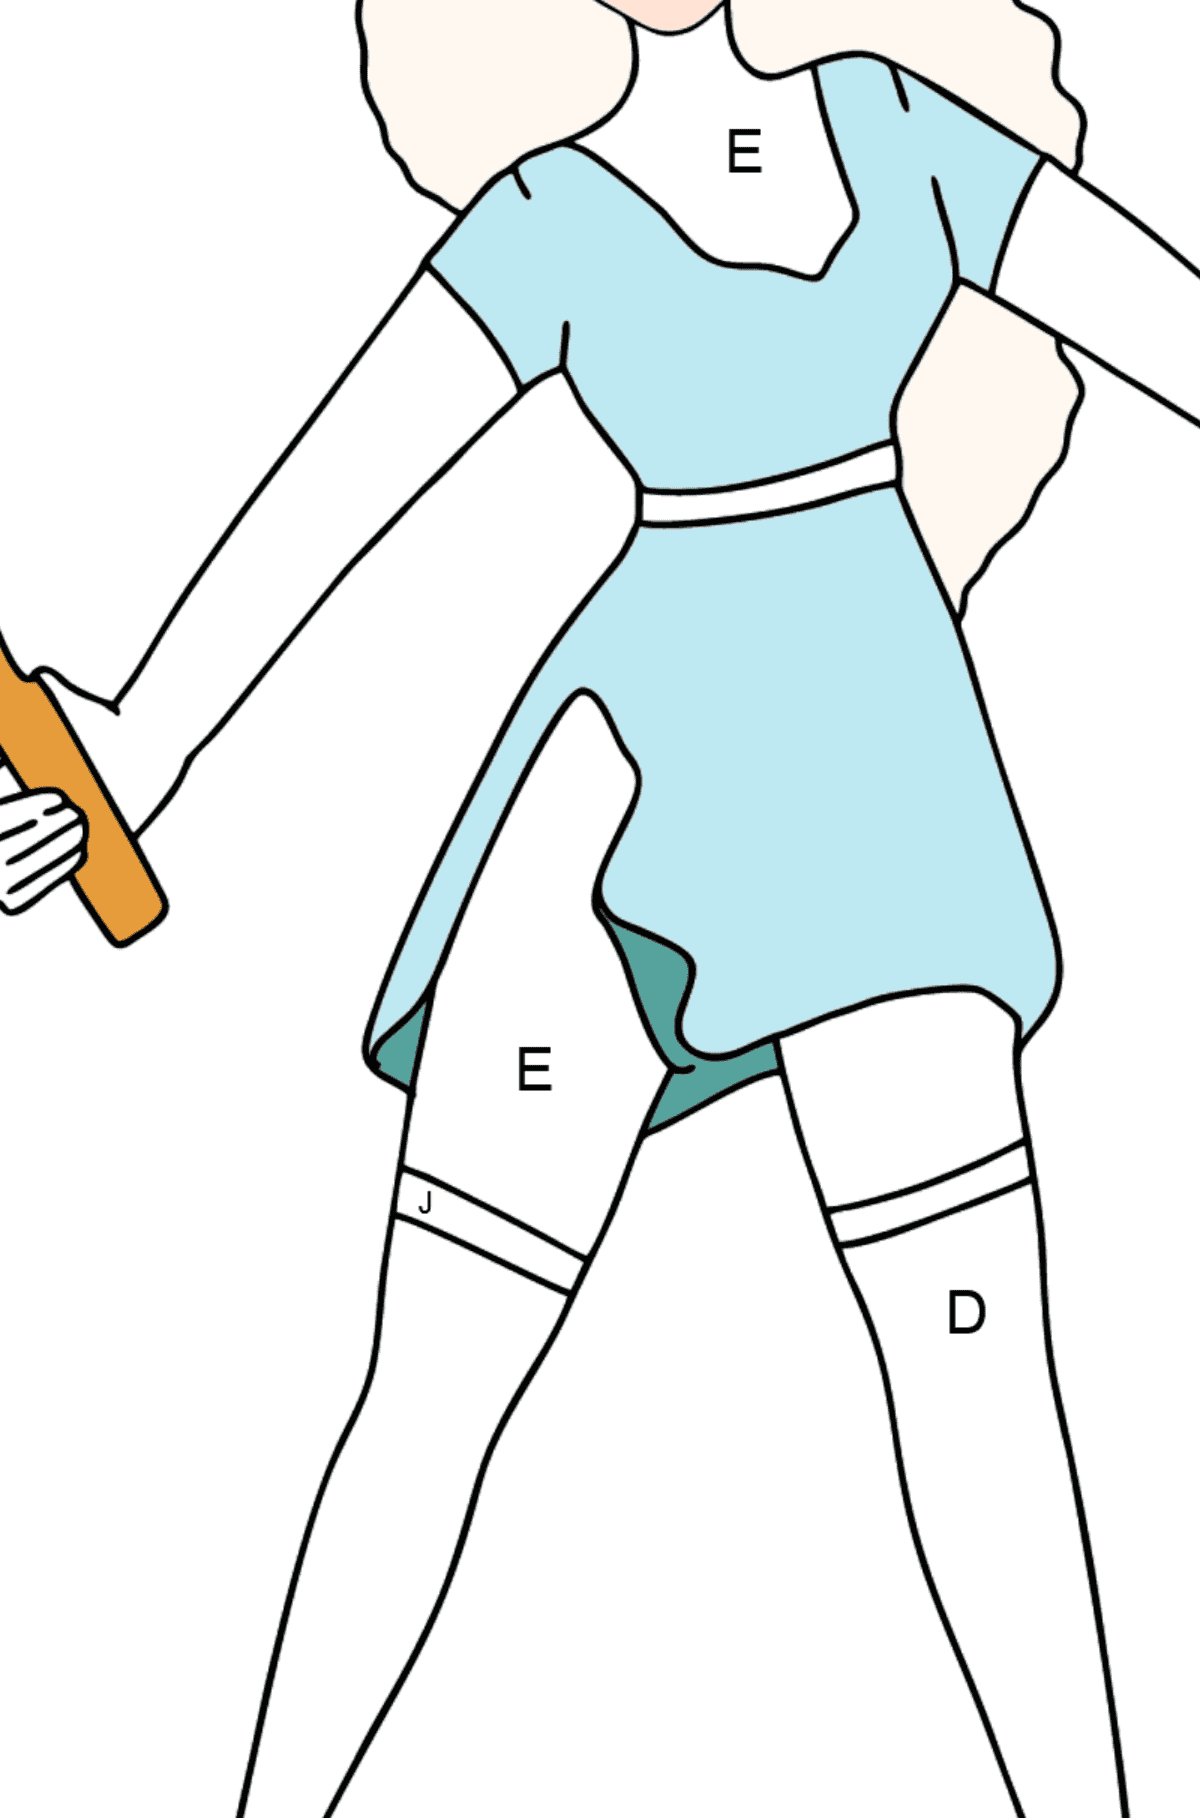 Barbie Doll Playing Tennis coloring page - Coloring by Letters for Kids